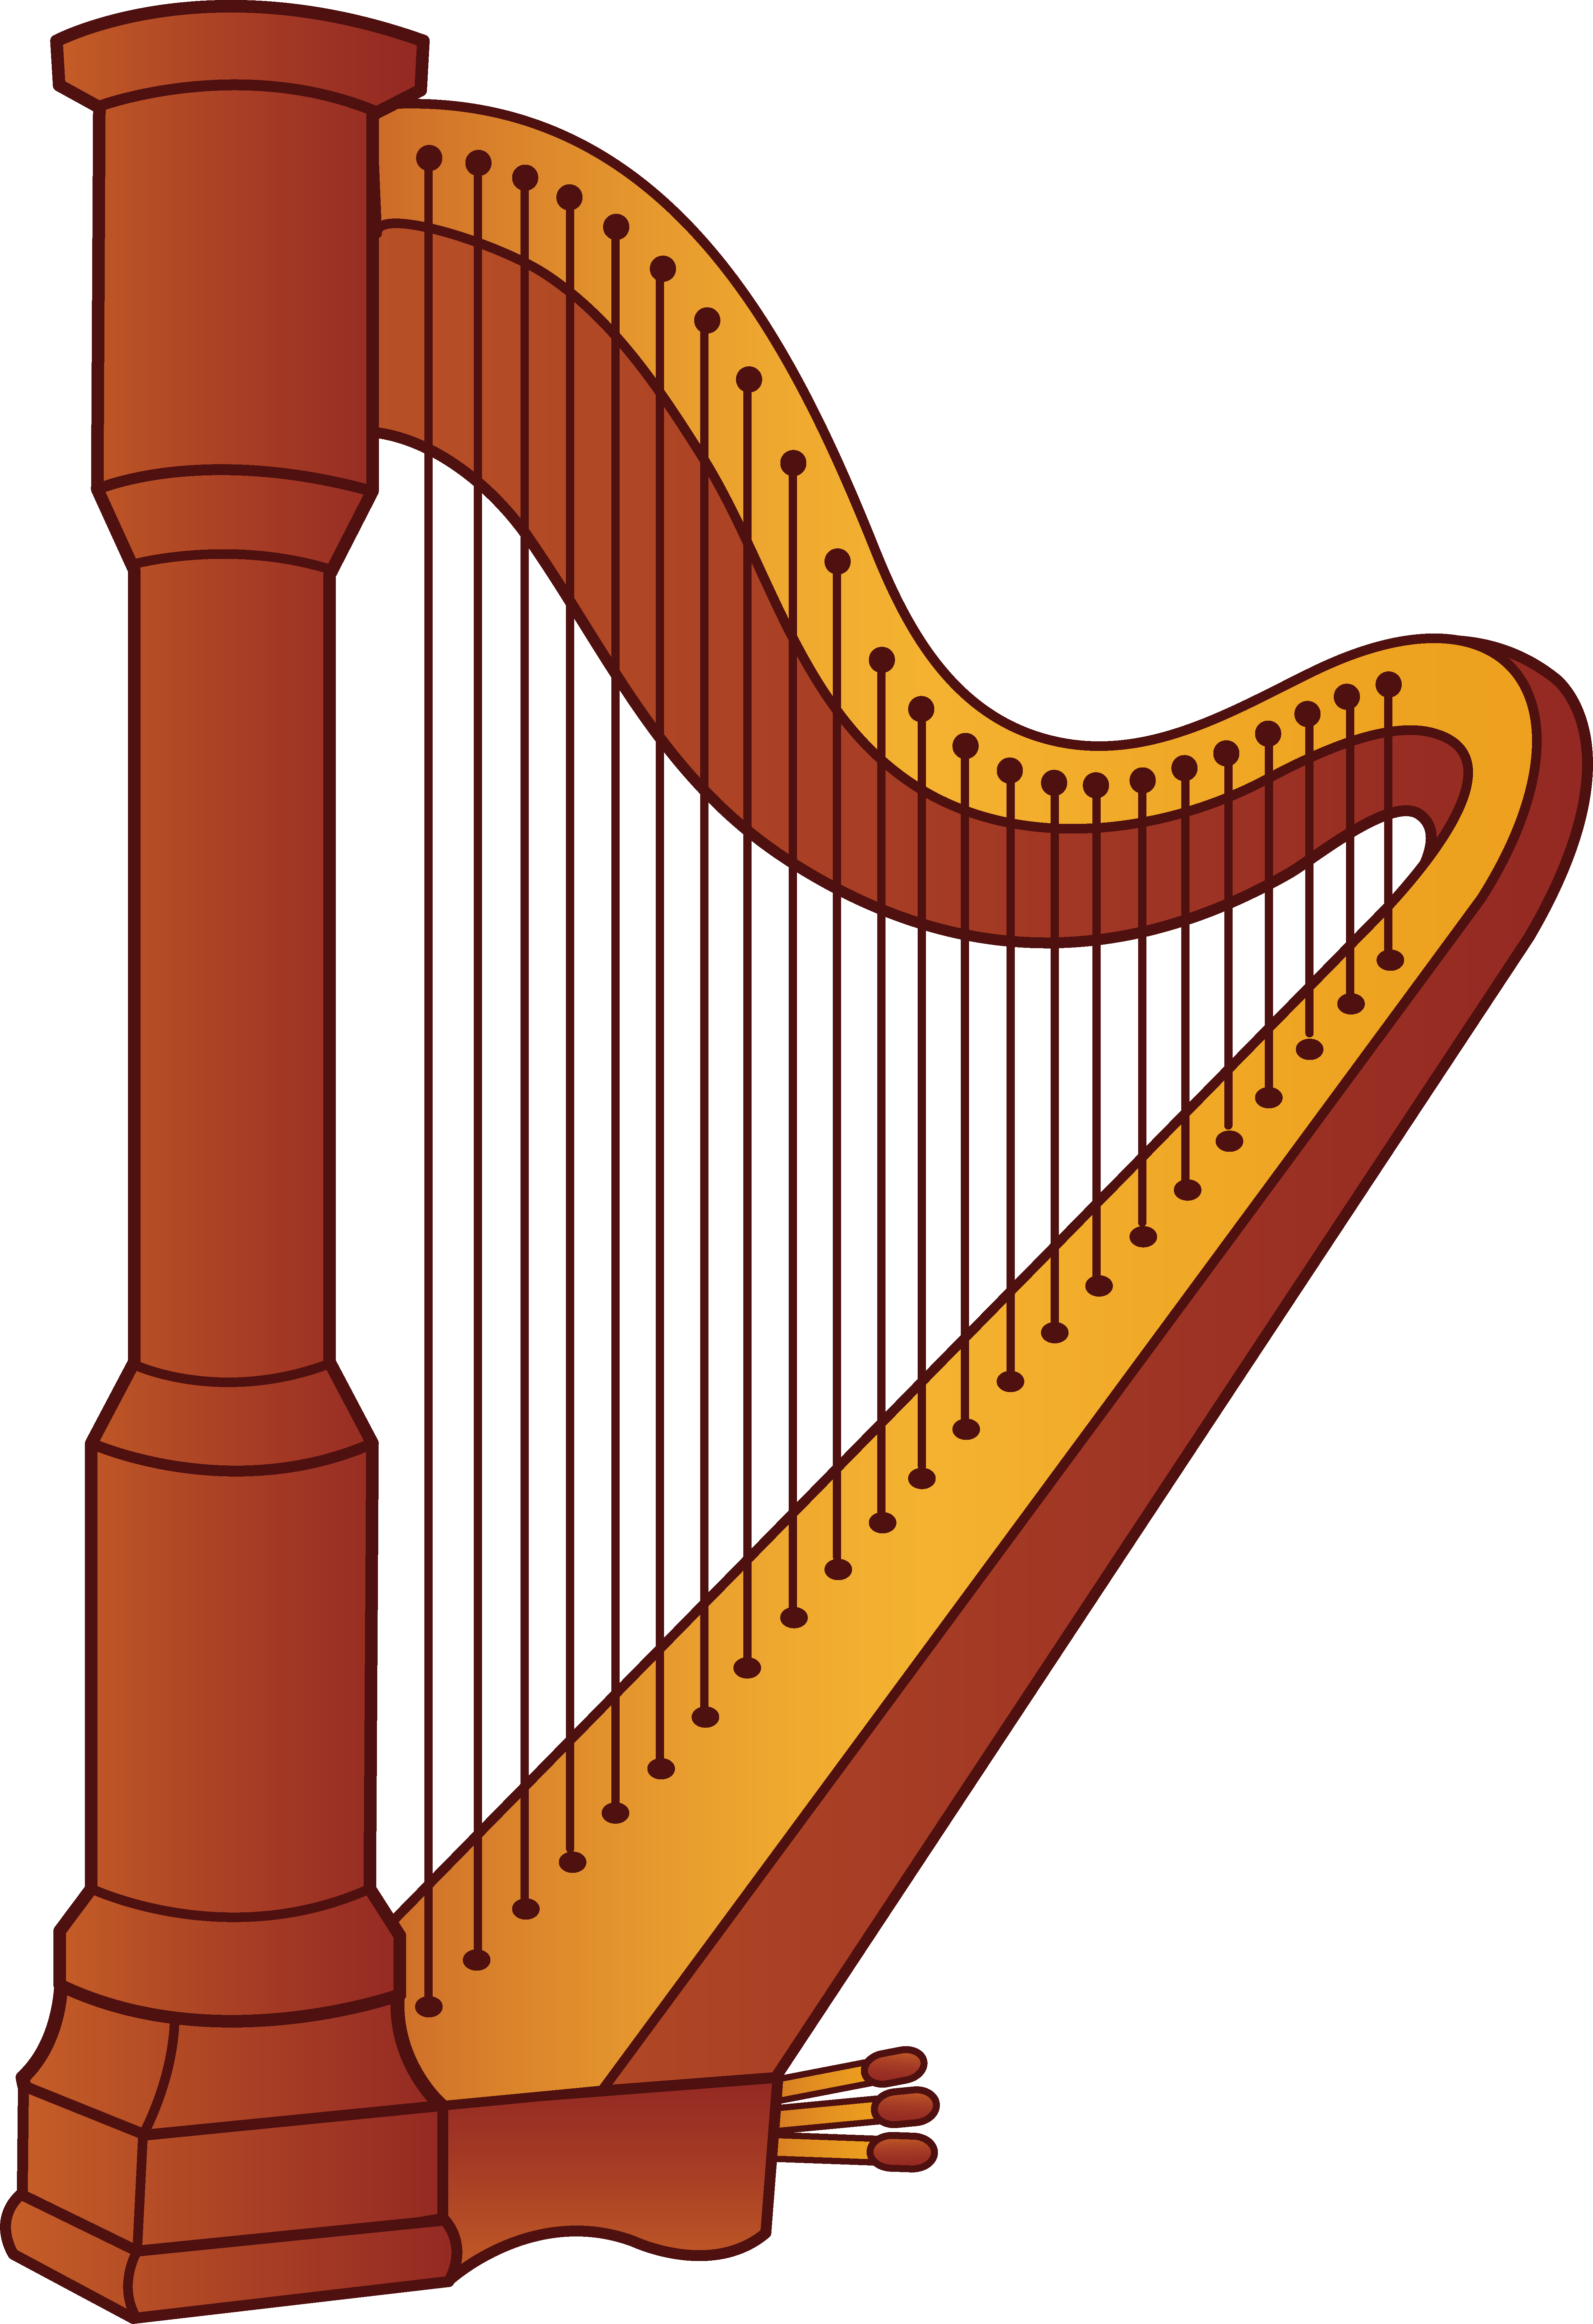 Musical instruments clipart free.